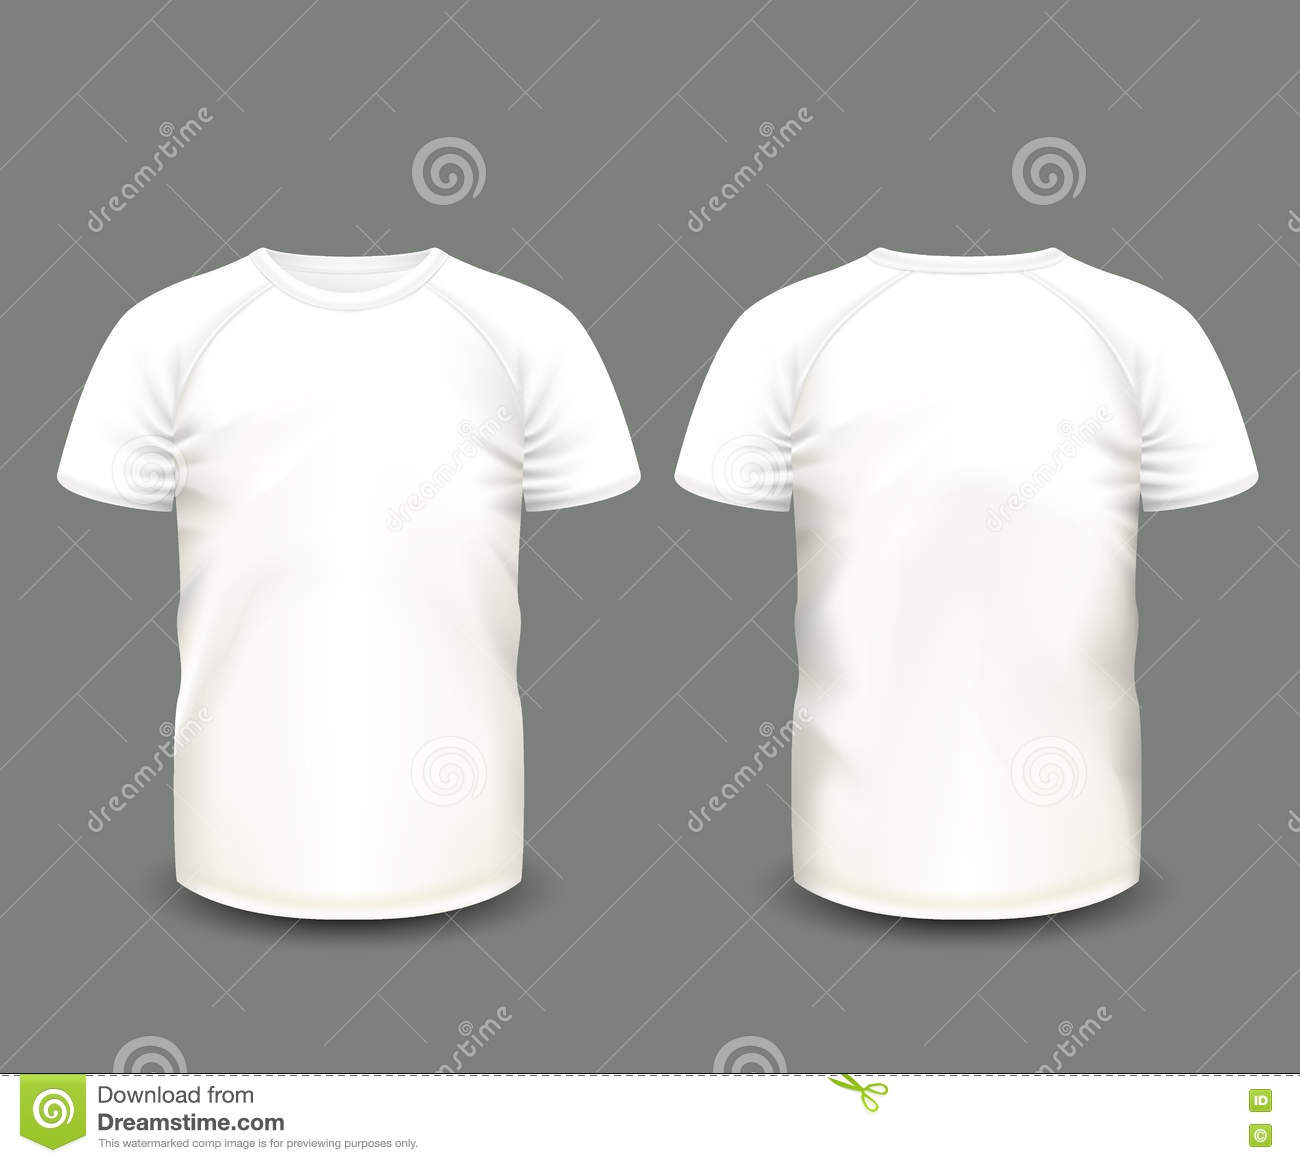 Men39s white raglan t shirt in front and back views vector template fully editable handmade for White t shirt template front and back